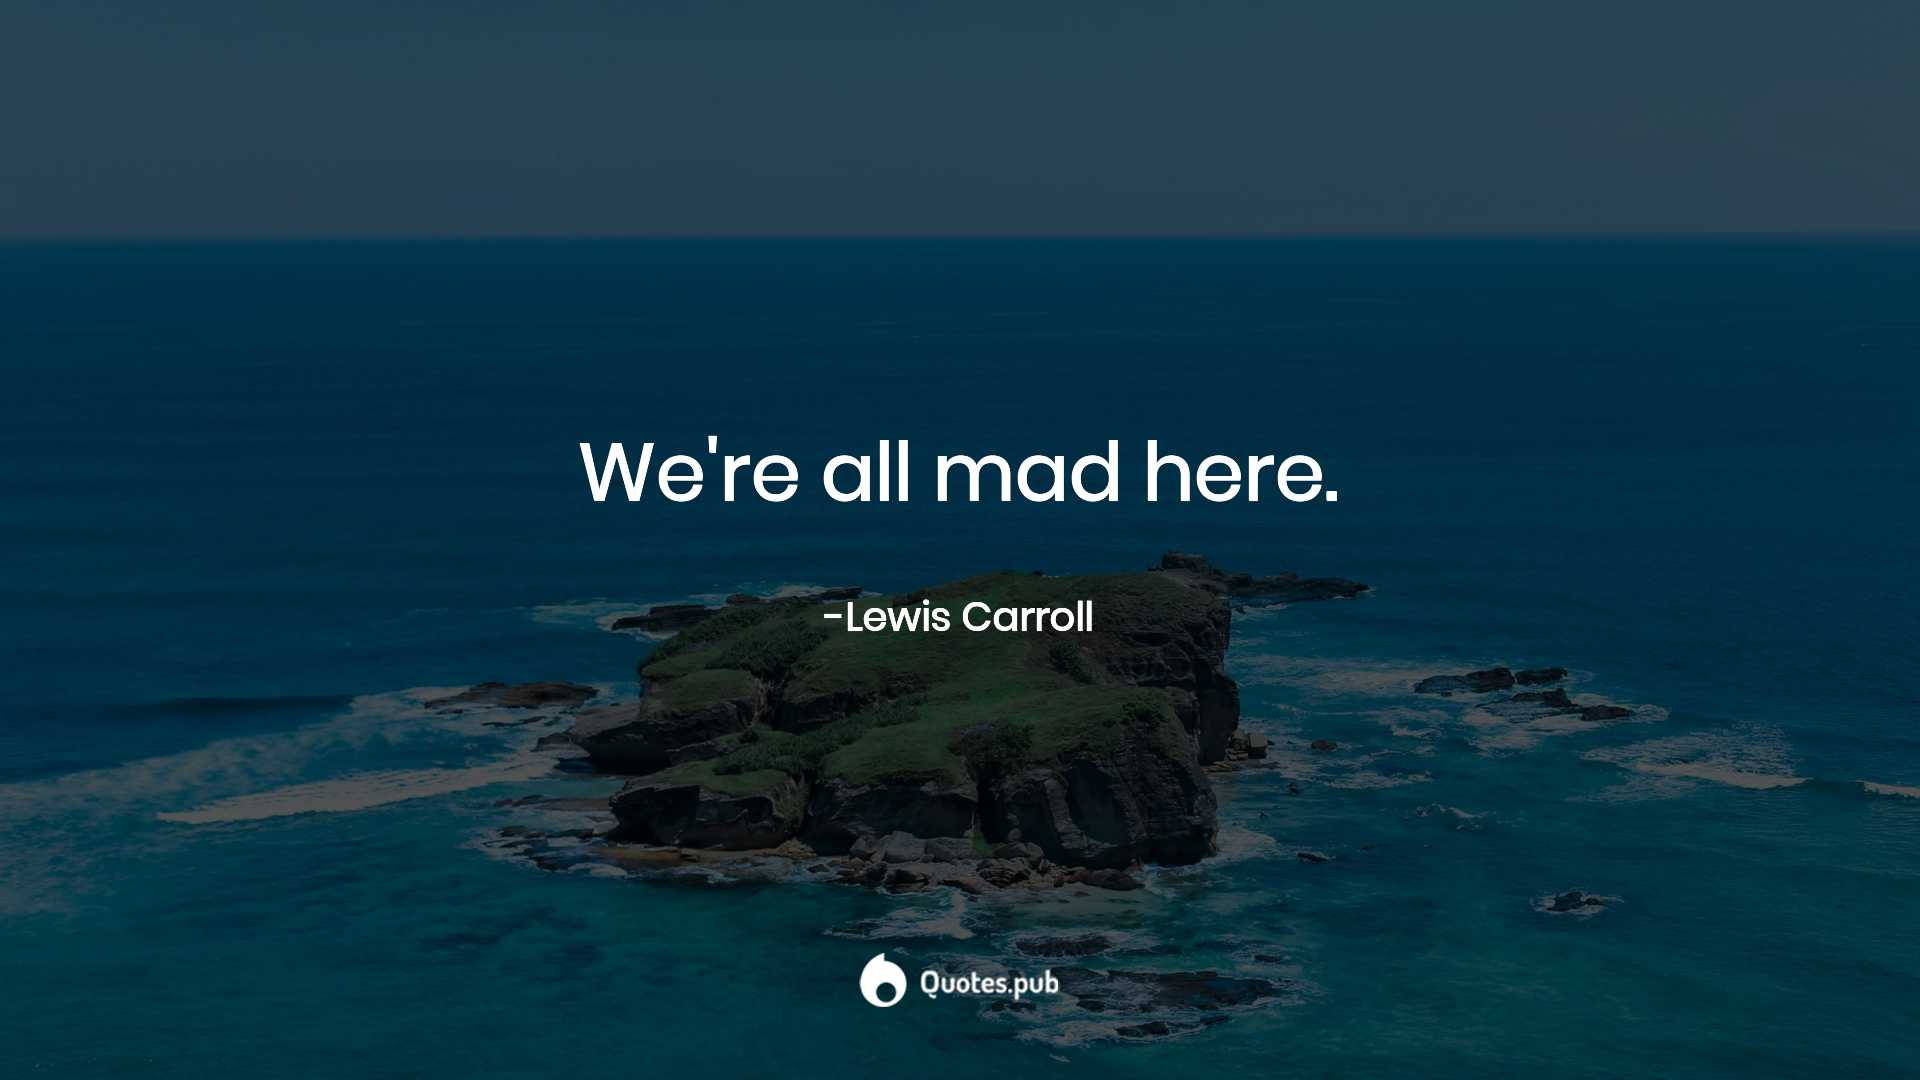 We Re All Mad Here Lewis Carroll Quotes Pub